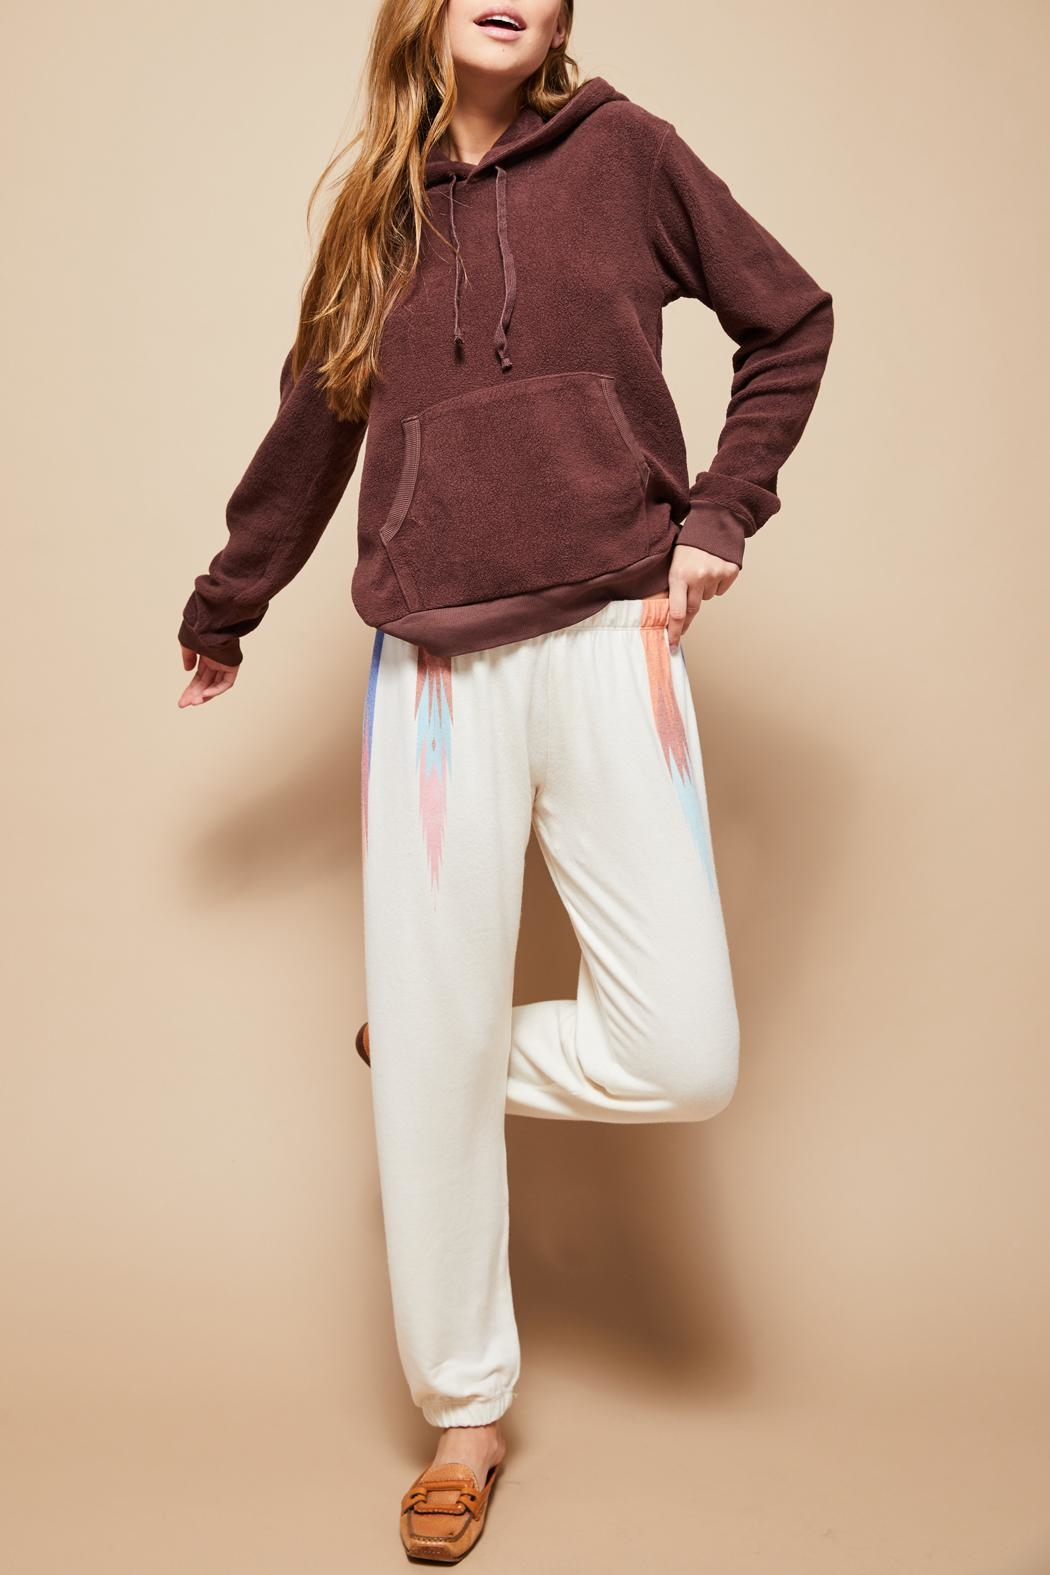 All Things Fabulous Feathers Sweats - Side Cropped Image